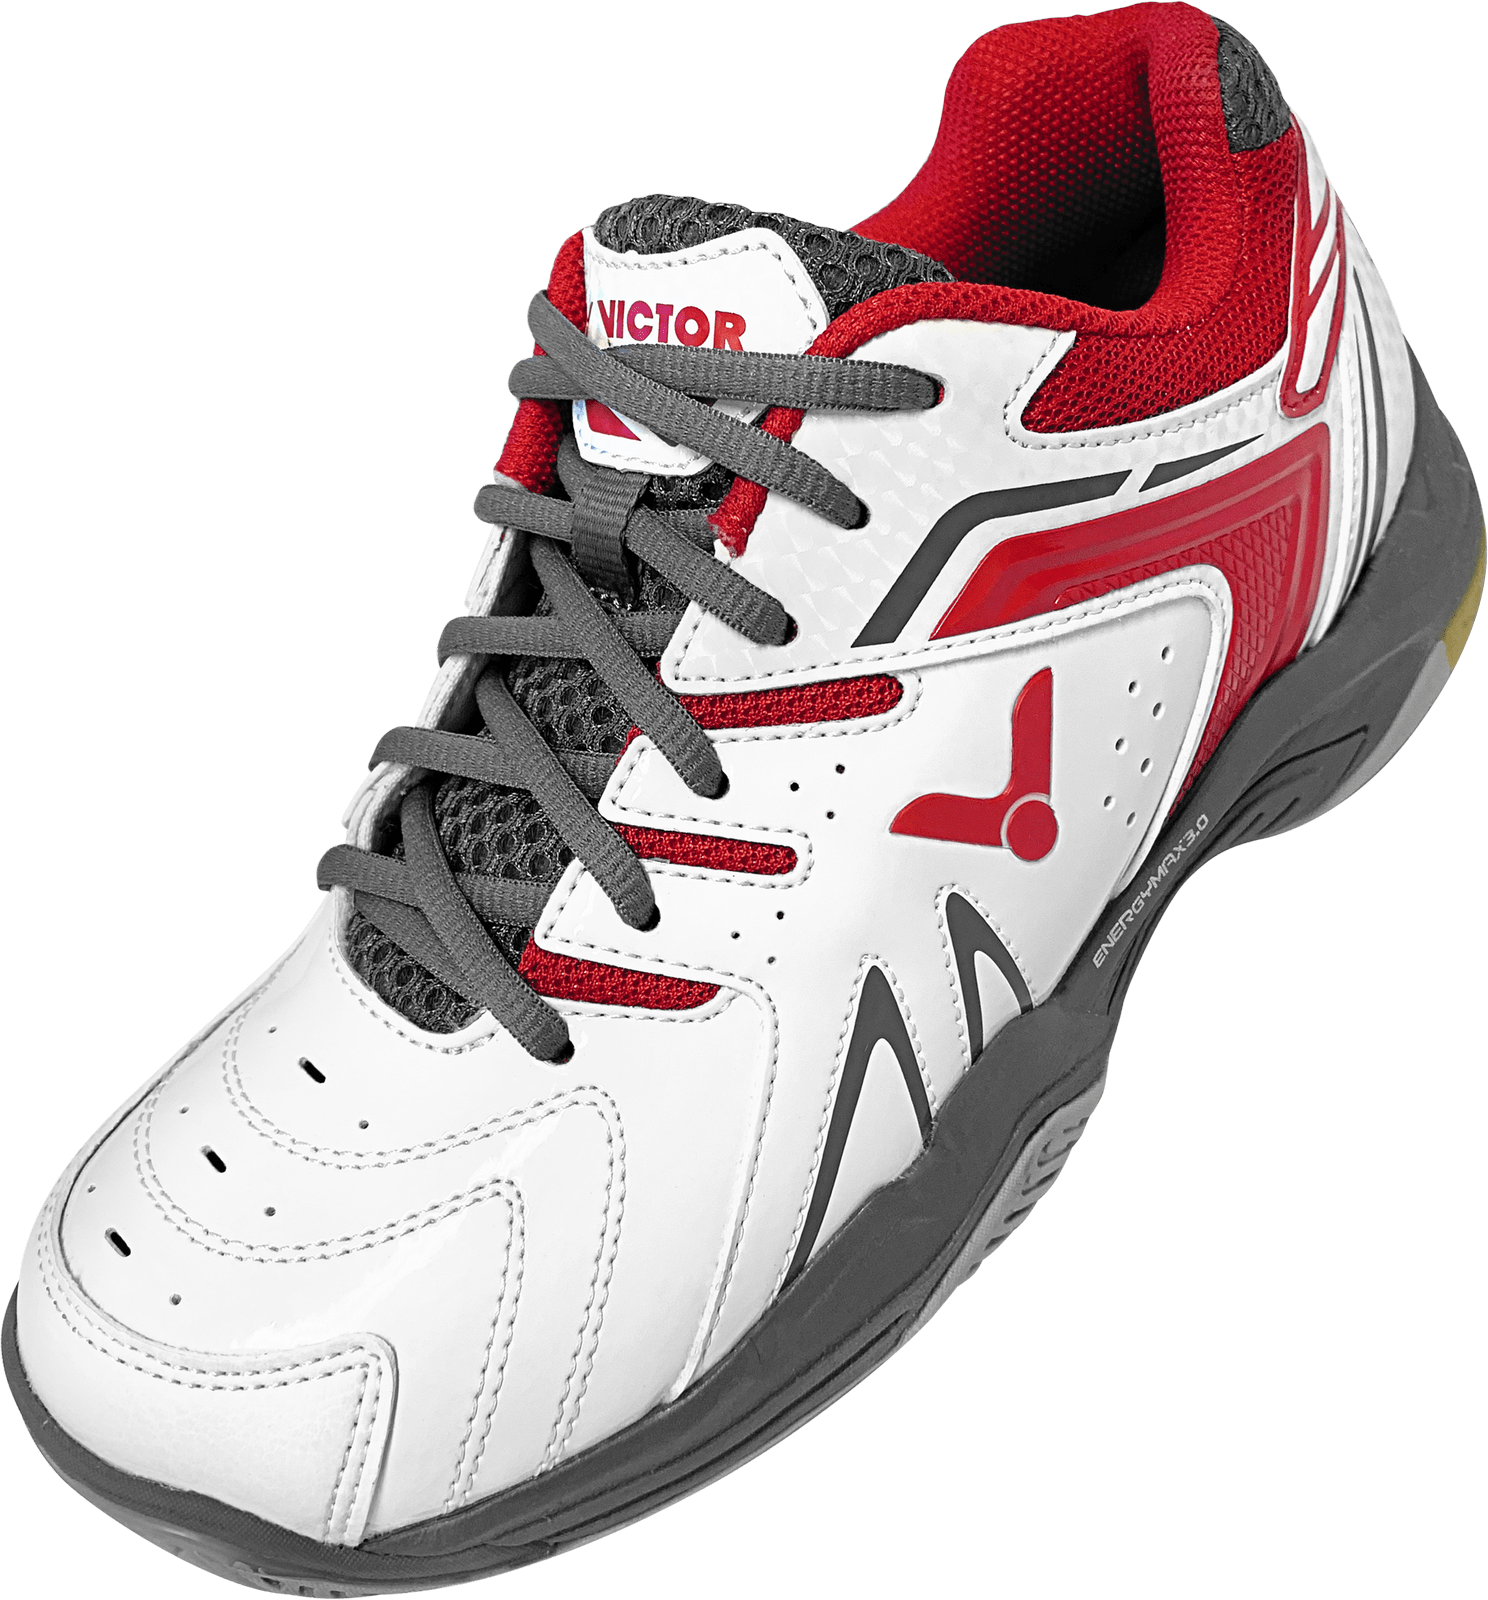 VICTOR A610 II white/red size 39,5